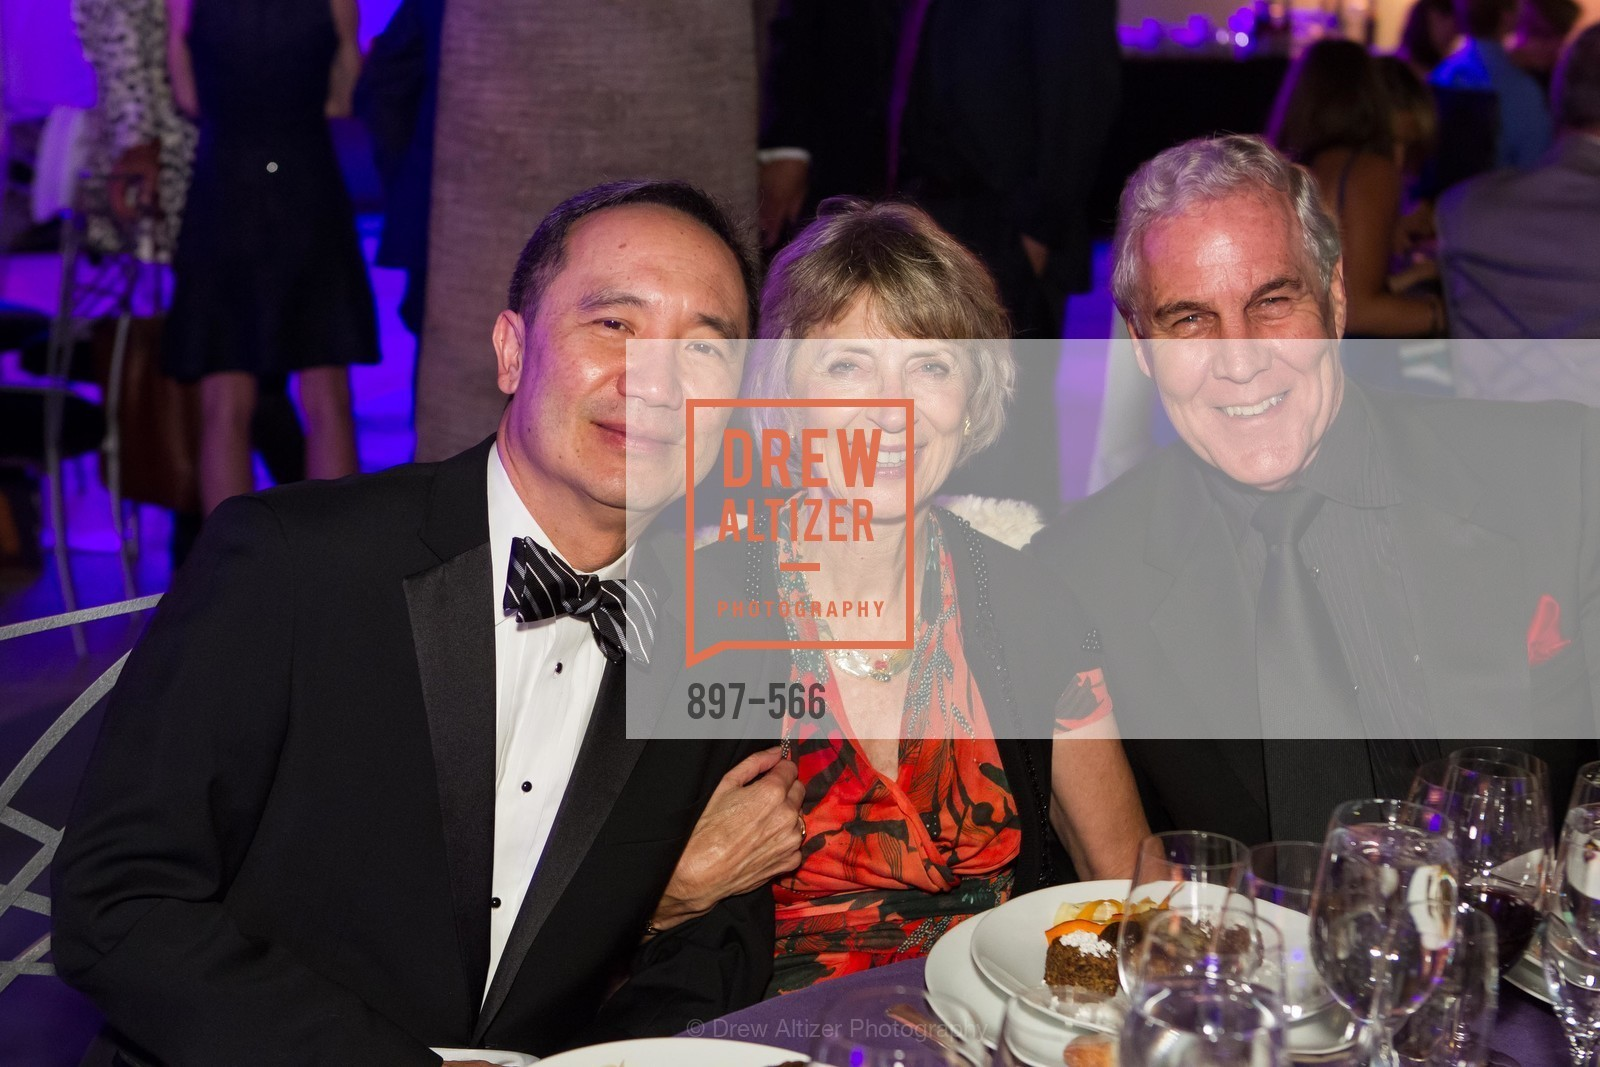 Andre Lu, Toby Fernald, Barry Fernald, SAN JOSE MUSEUM OF ART'S Spectrum Gala - 45th Anniversary, US, September 13th, 2014,Drew Altizer, Drew Altizer Photography, full-service agency, private events, San Francisco photographer, photographer california